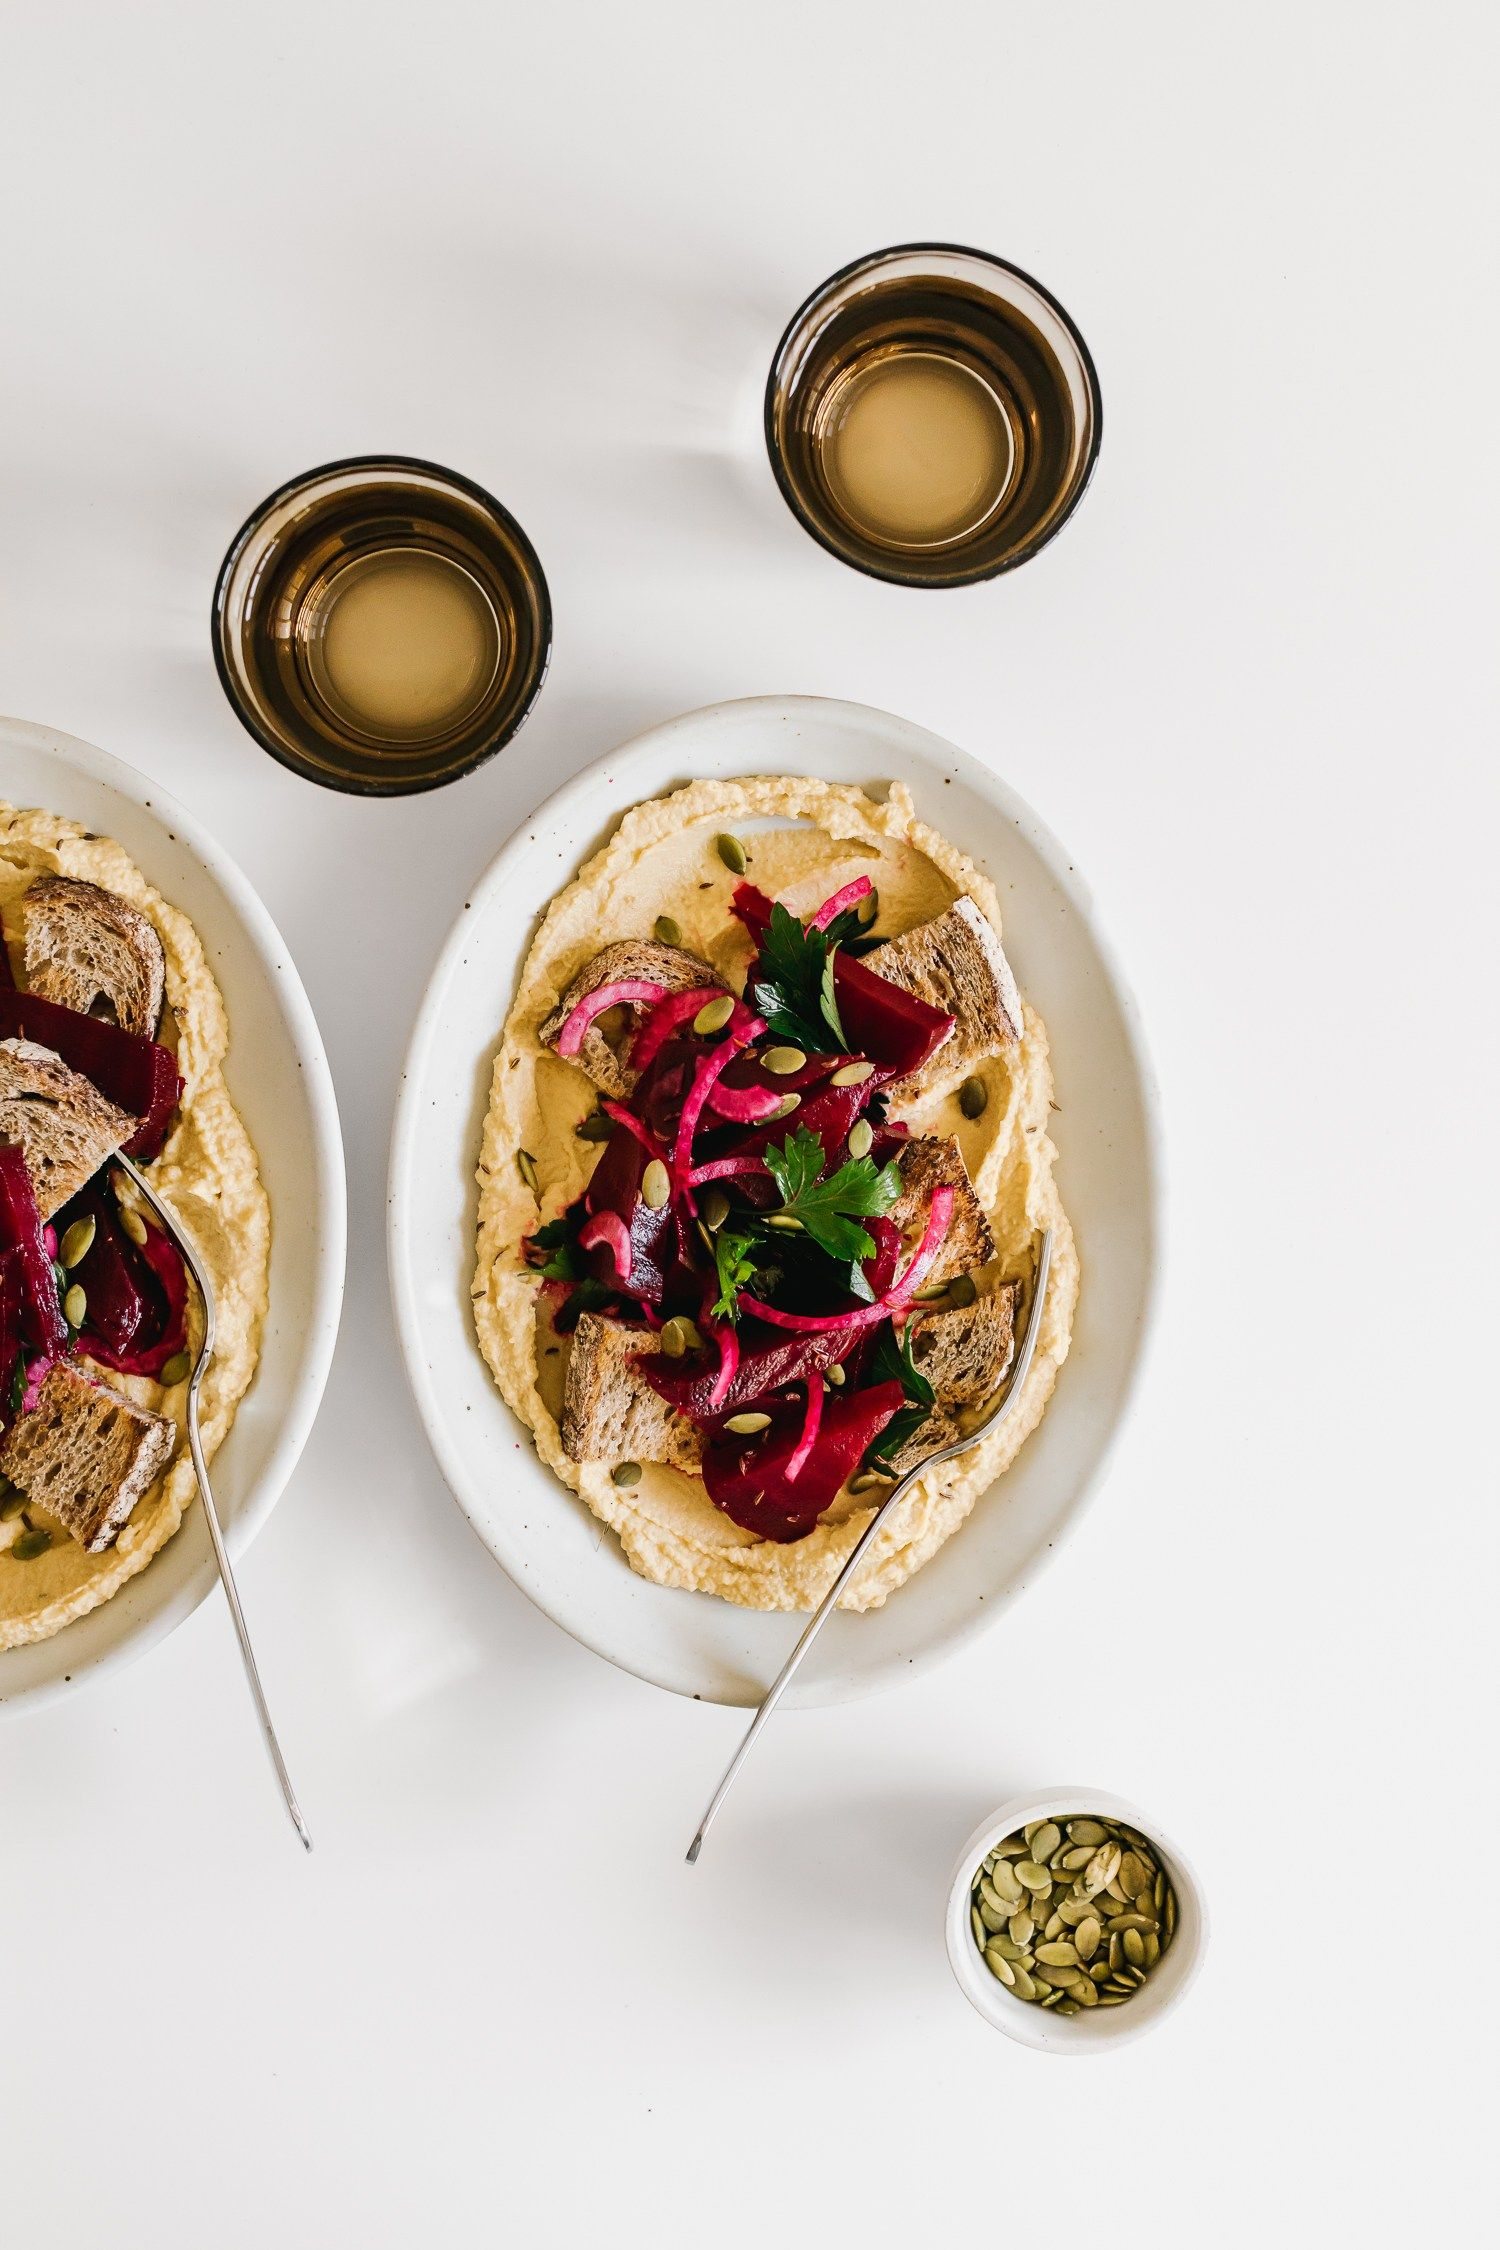 Beet-Centric Hummus & Marinated Salad w/ Toasted Rye & Caraway Seeds by Faring Well